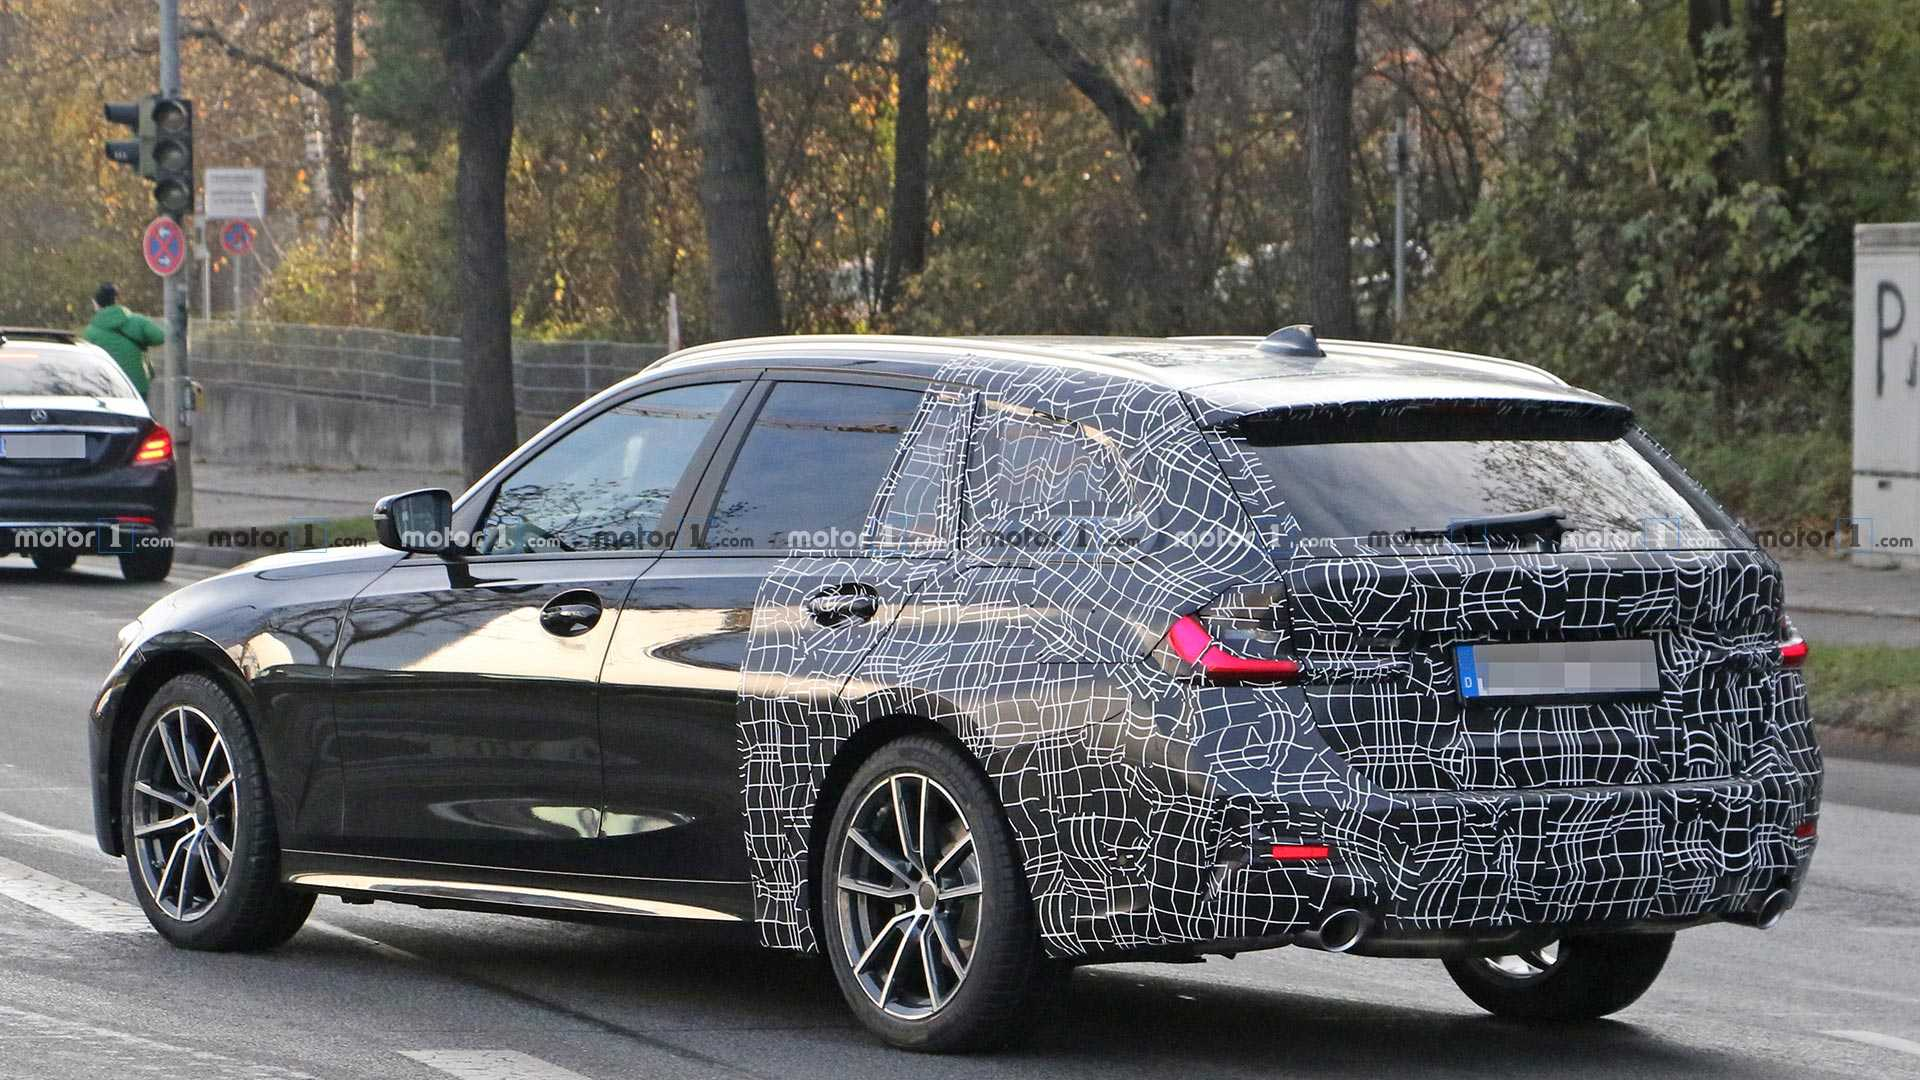 16 New Spy Shots BMW 3 Series Concept And Review